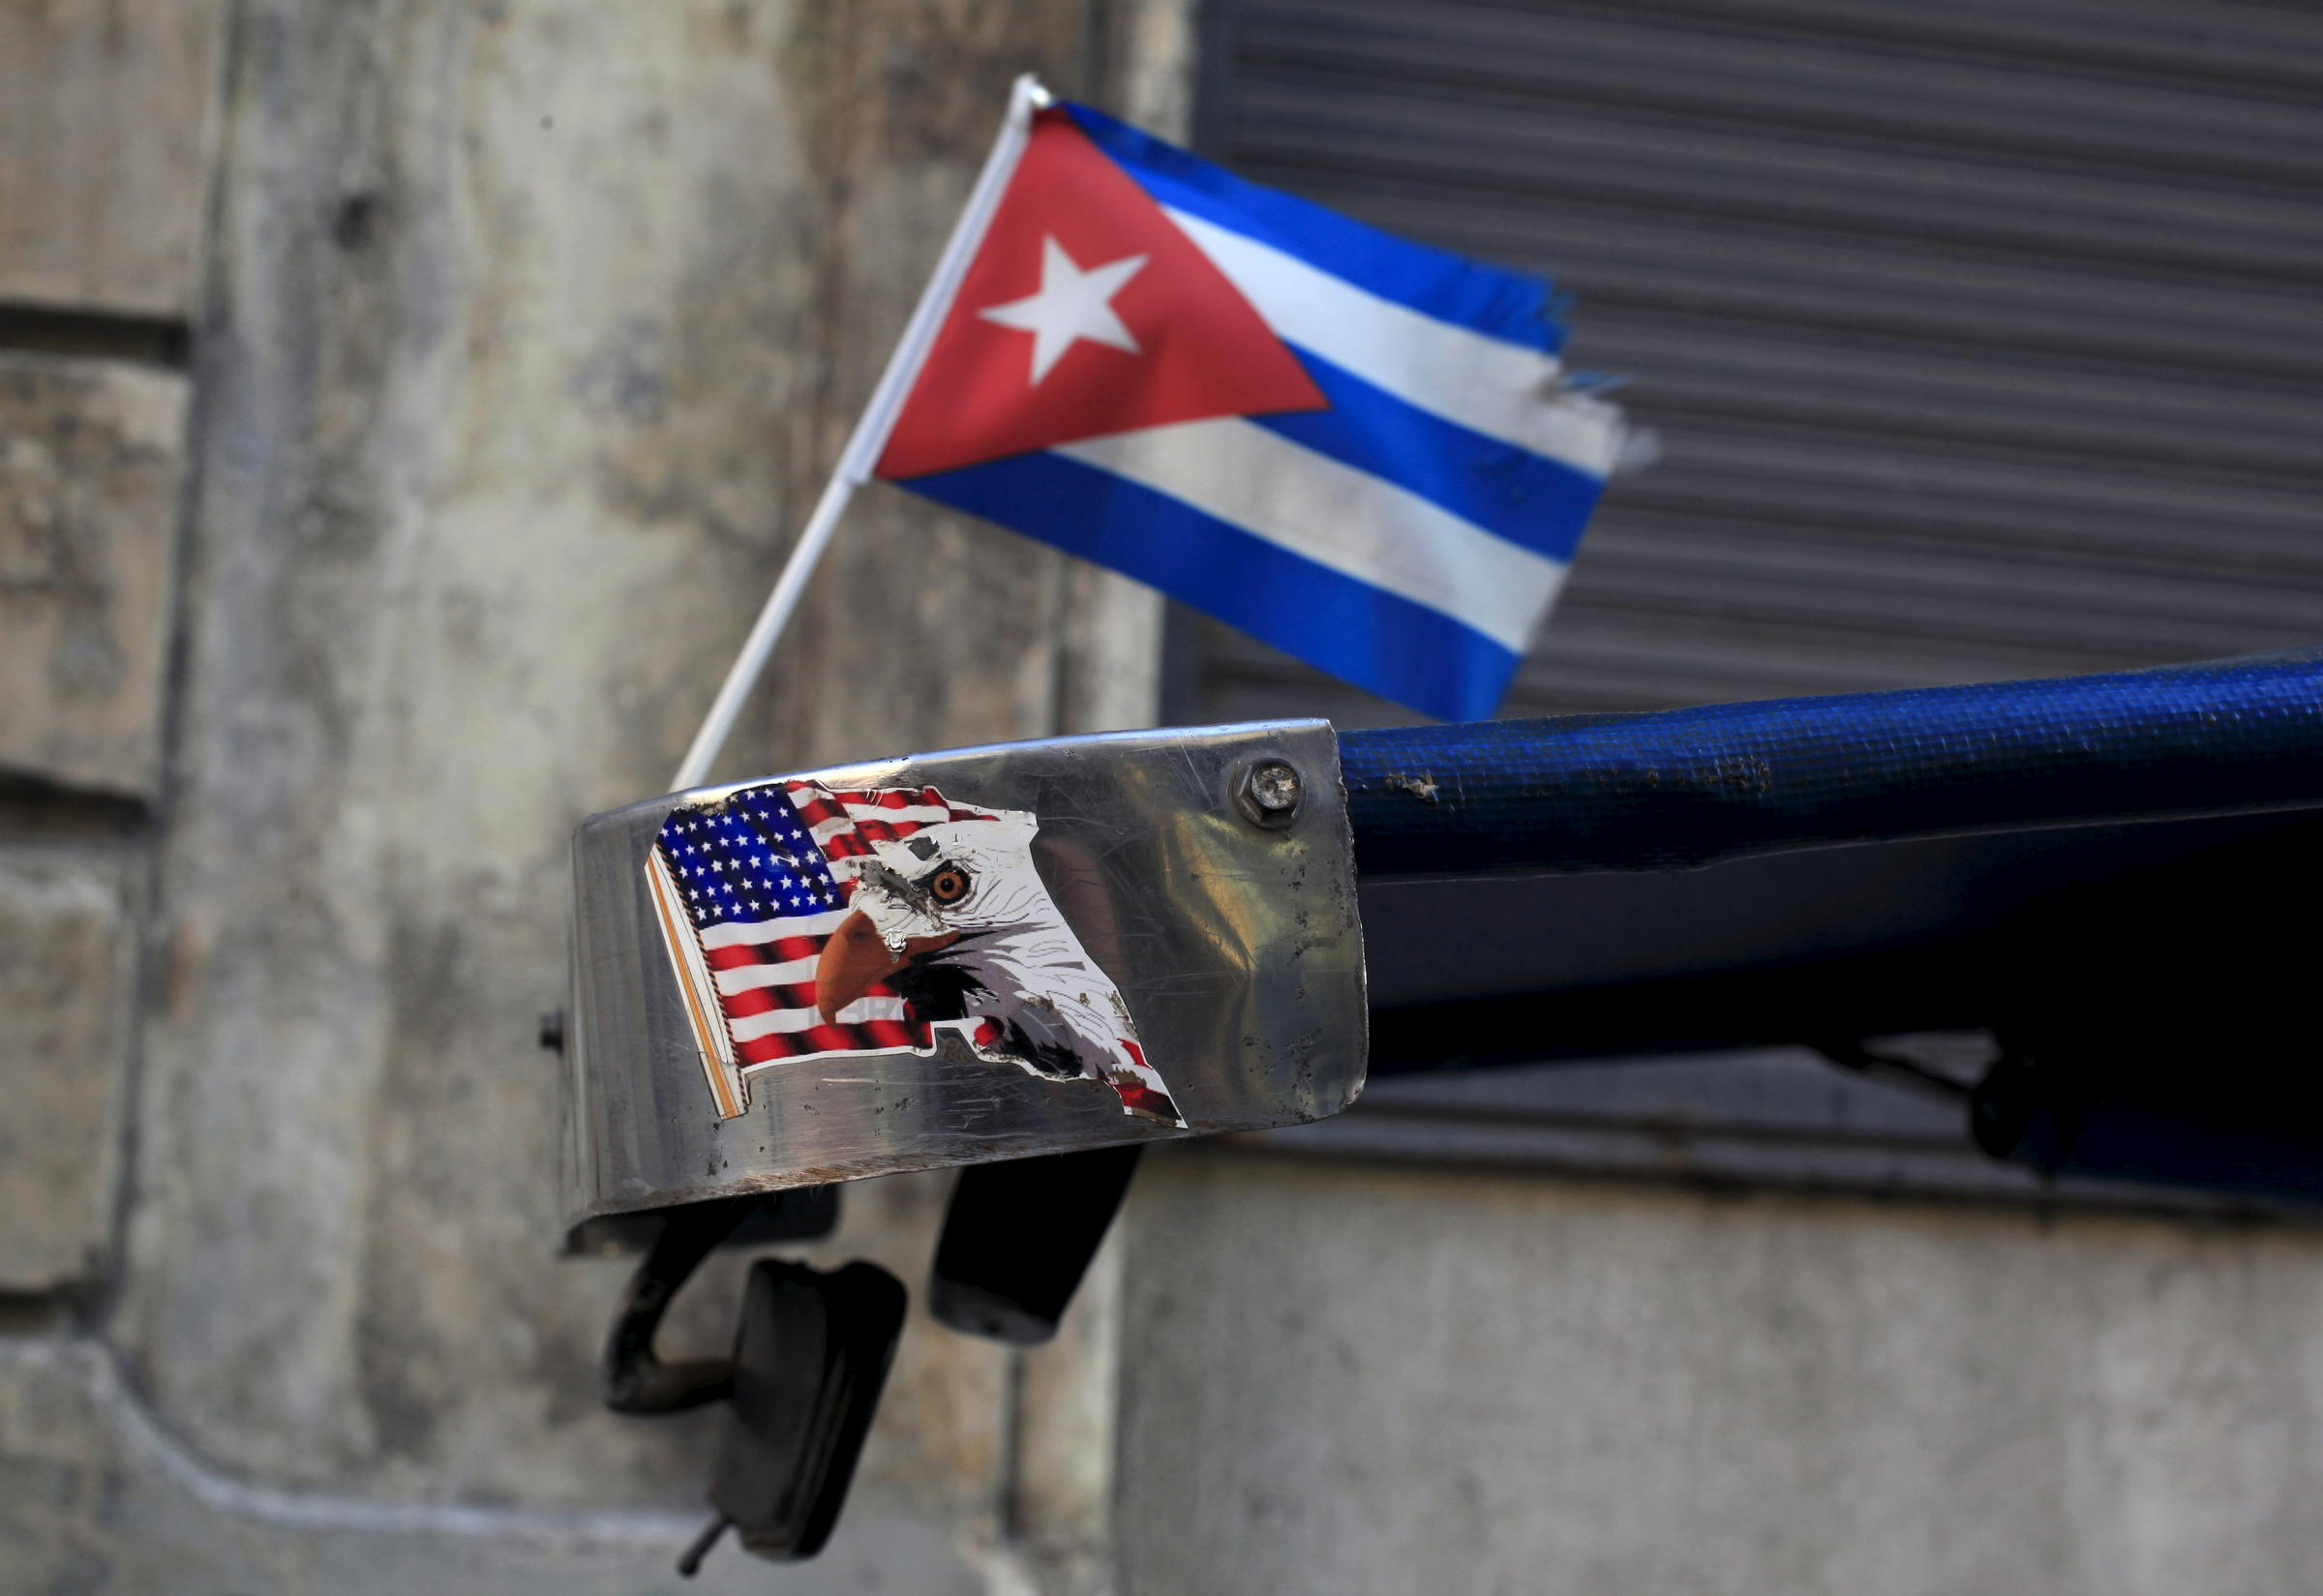 Reactions to End of the US 'Wet Foot, Dry Foot' Cuban Policy